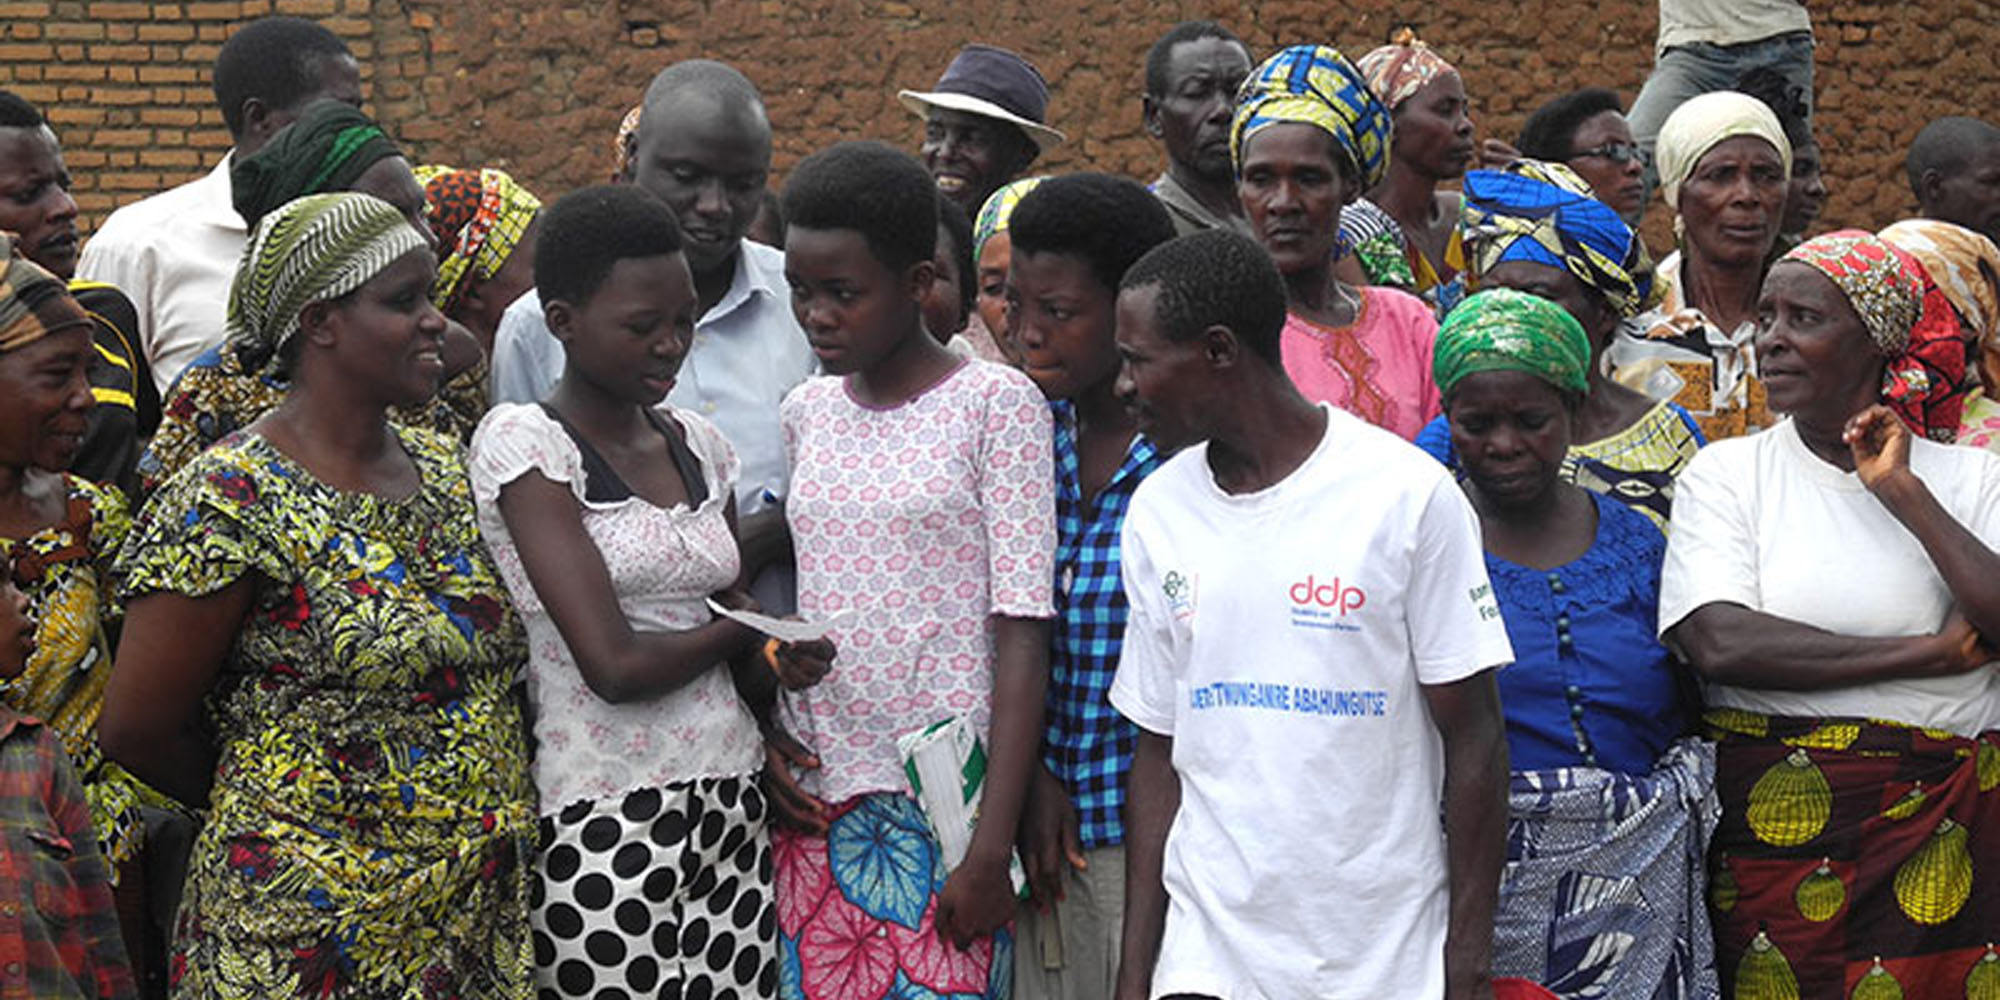 Returnees from refugee camps. Burundi